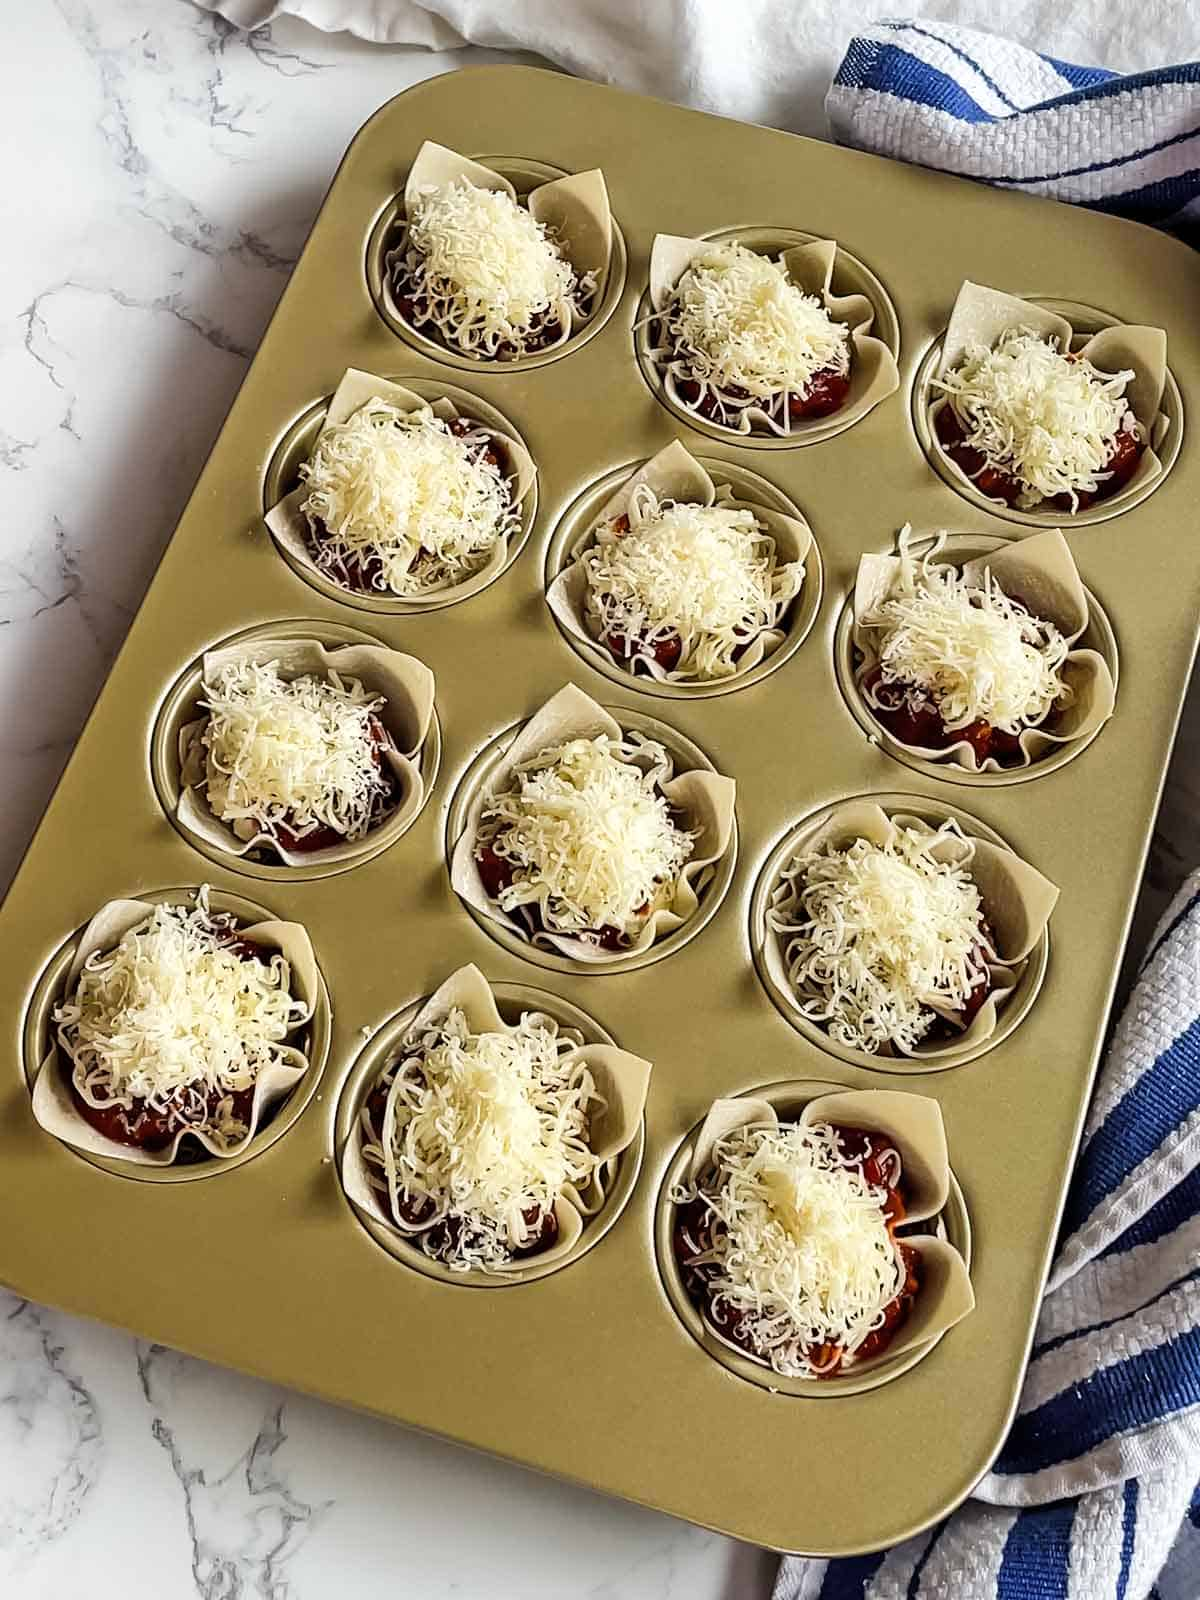 Sprinkled with parmesan cheese